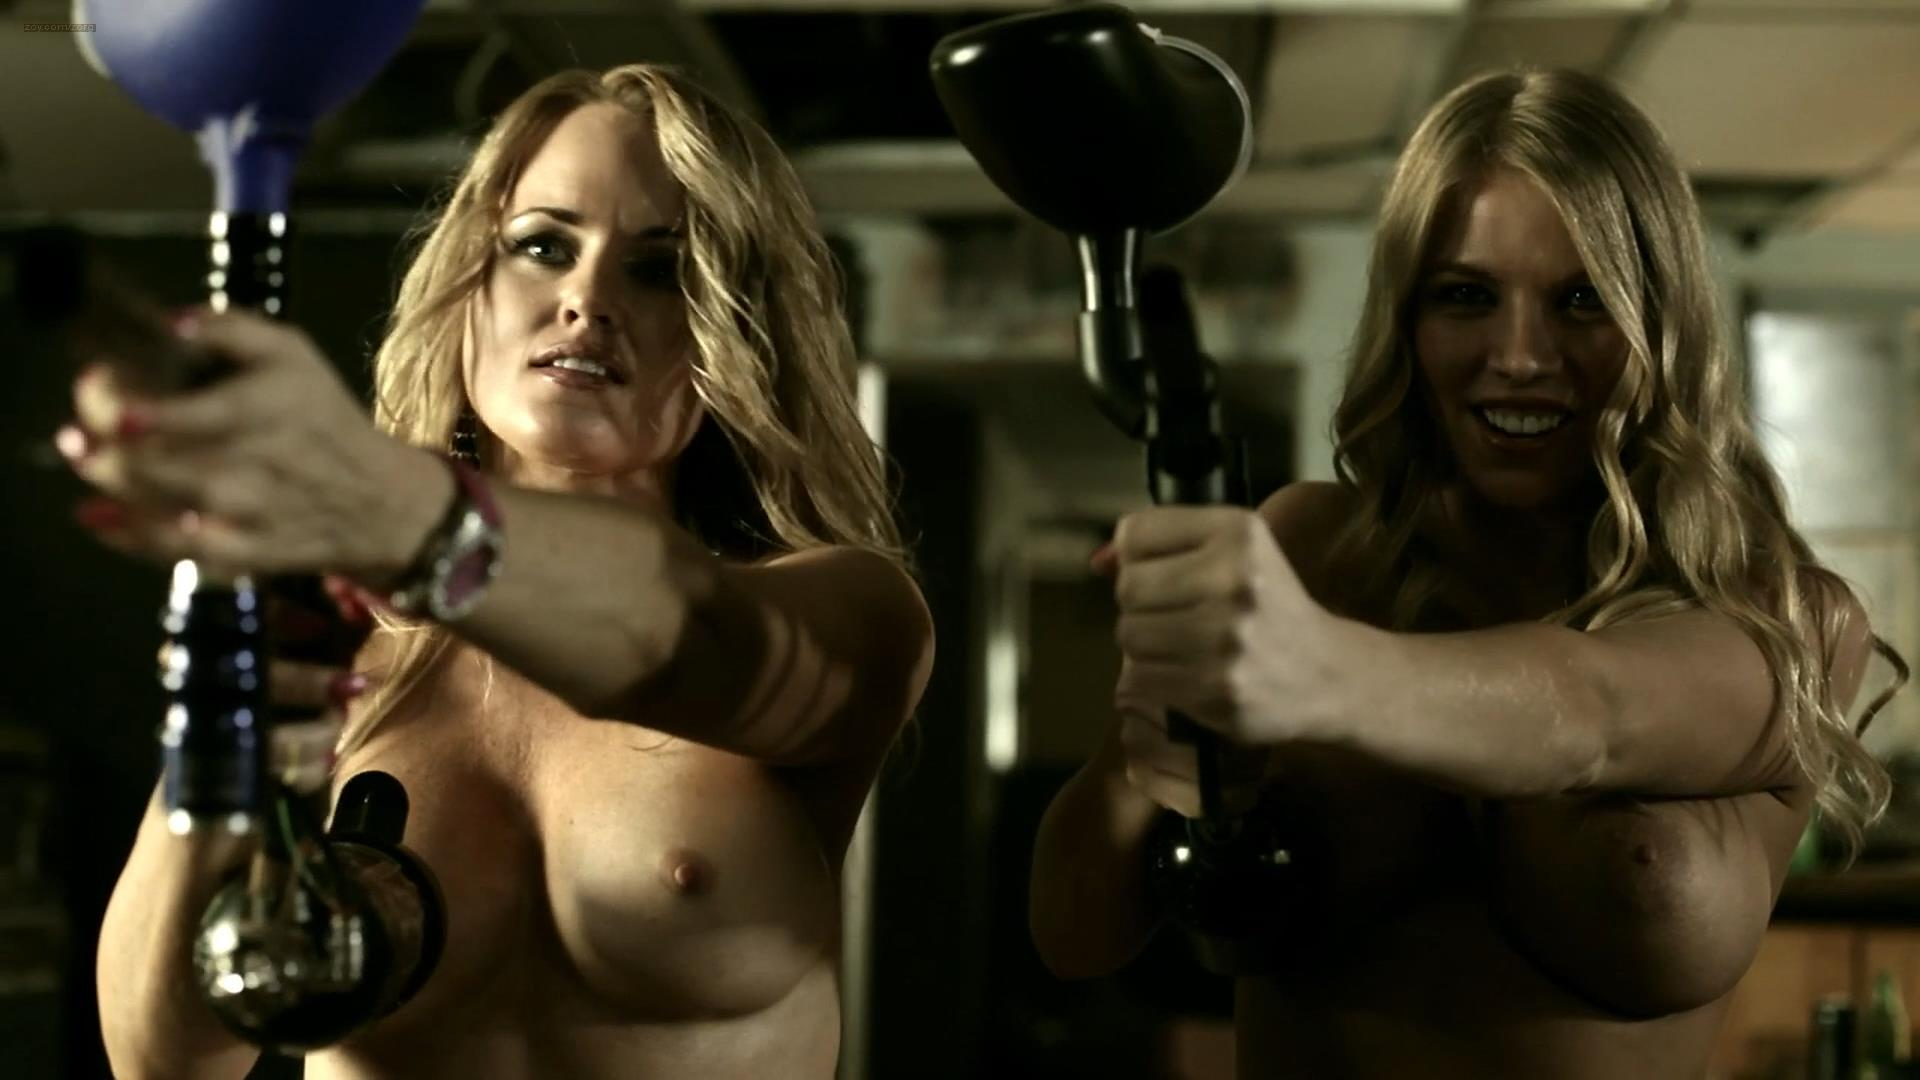 Aimee Bello nude sex oral Mandy Lane nude topless and others nude - Hazard Jack (2014) hd1080p (4)